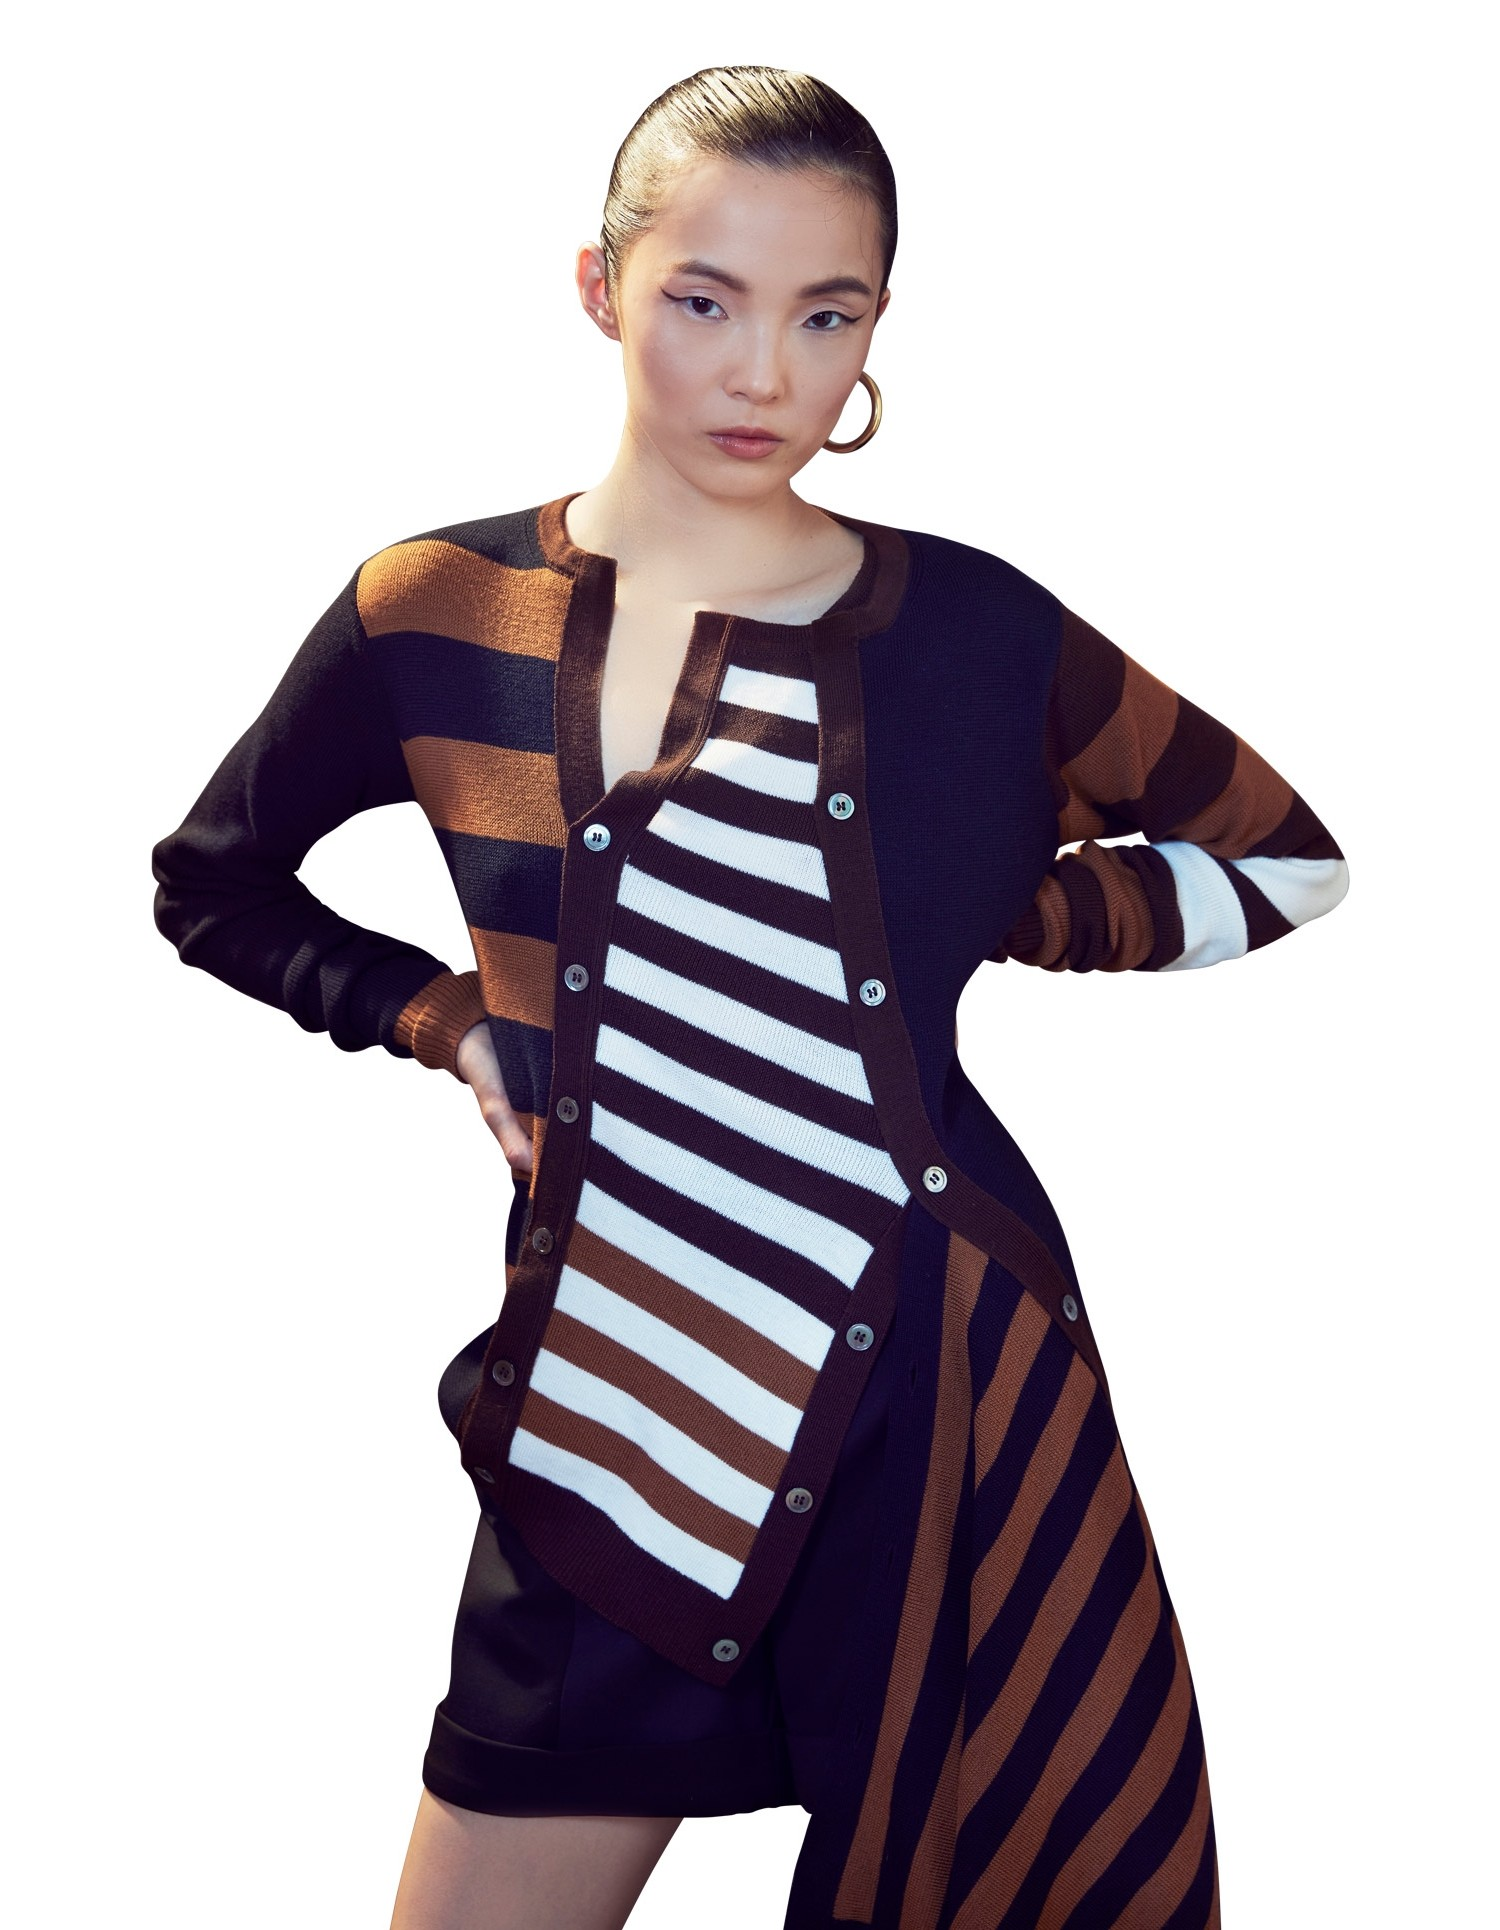 MONSE Multilayer Striped Cardigan in Midnight Multi on Model Front Detail View